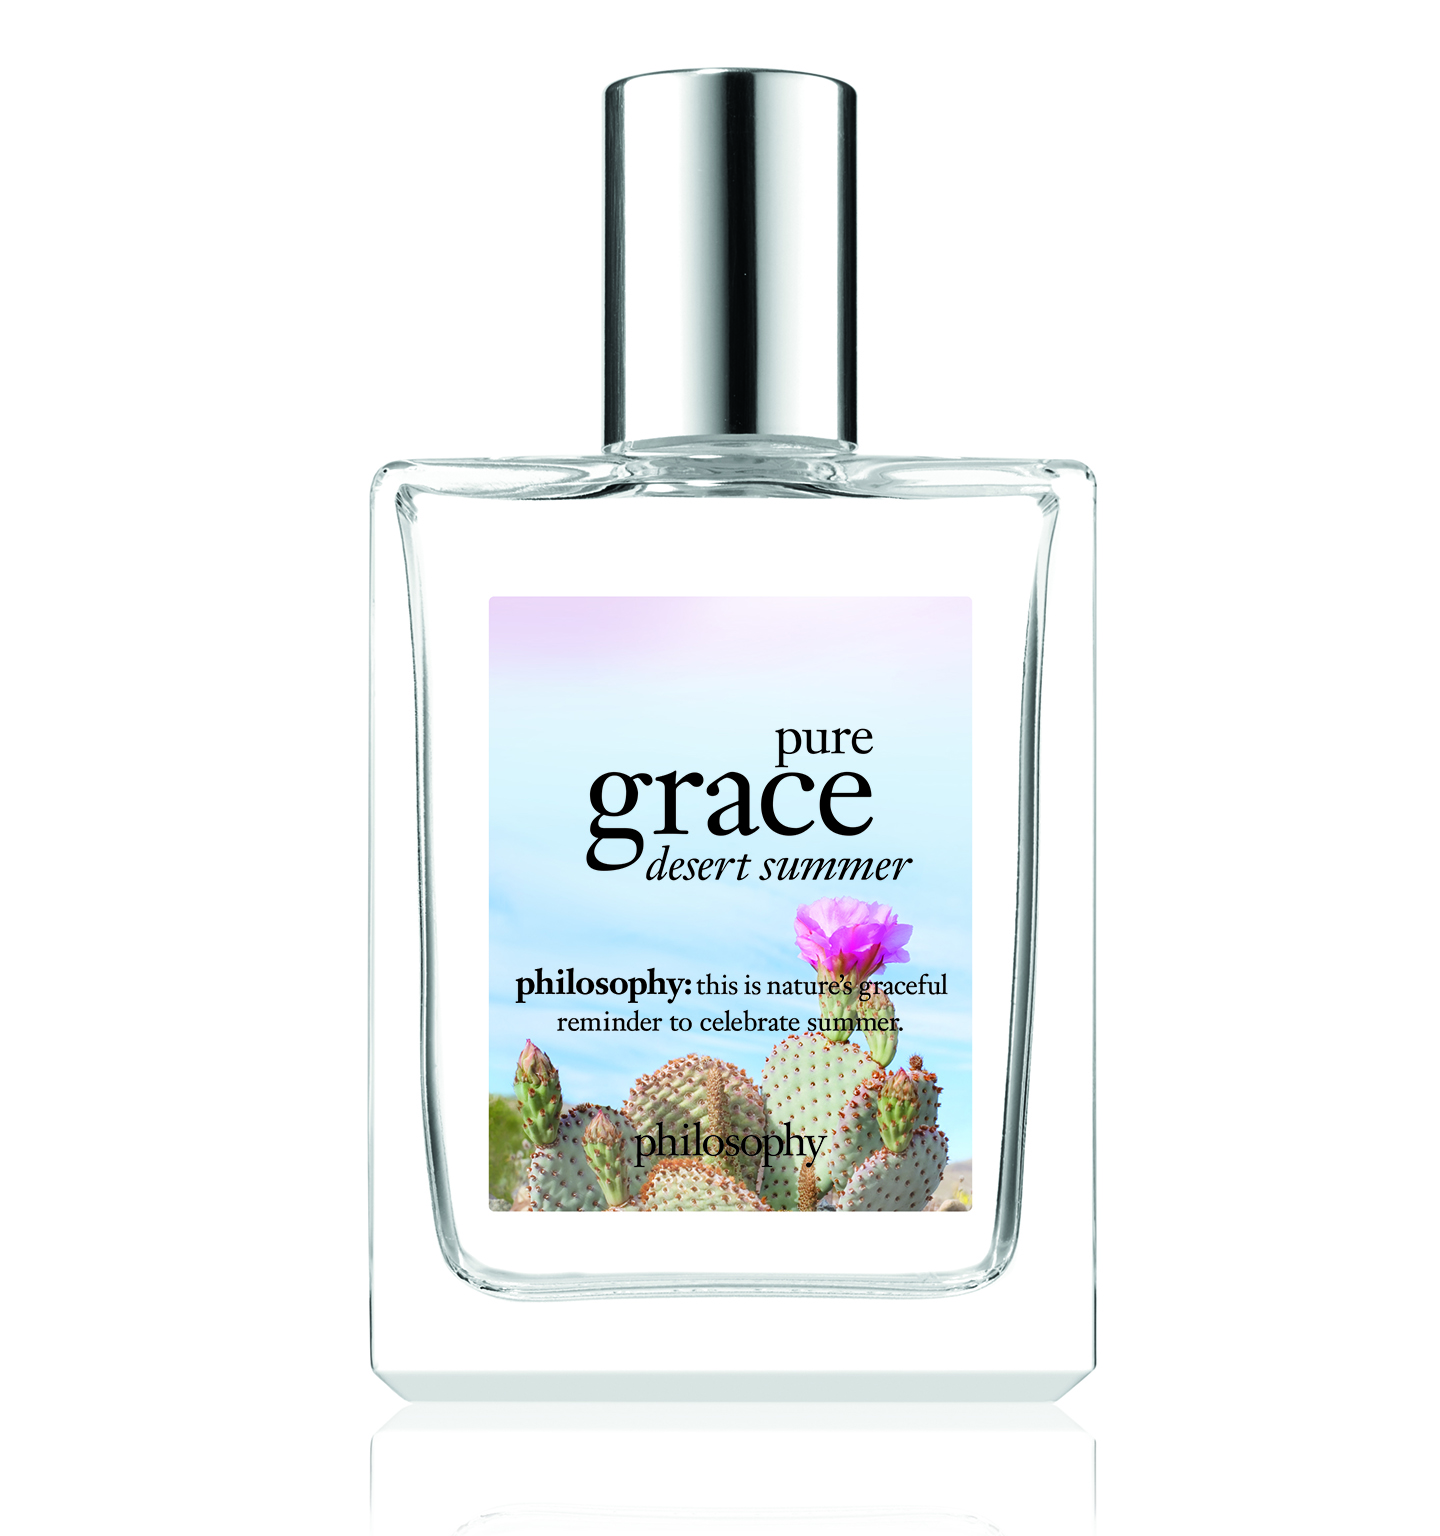 philosophy, pure grace desert summer spray fragrance